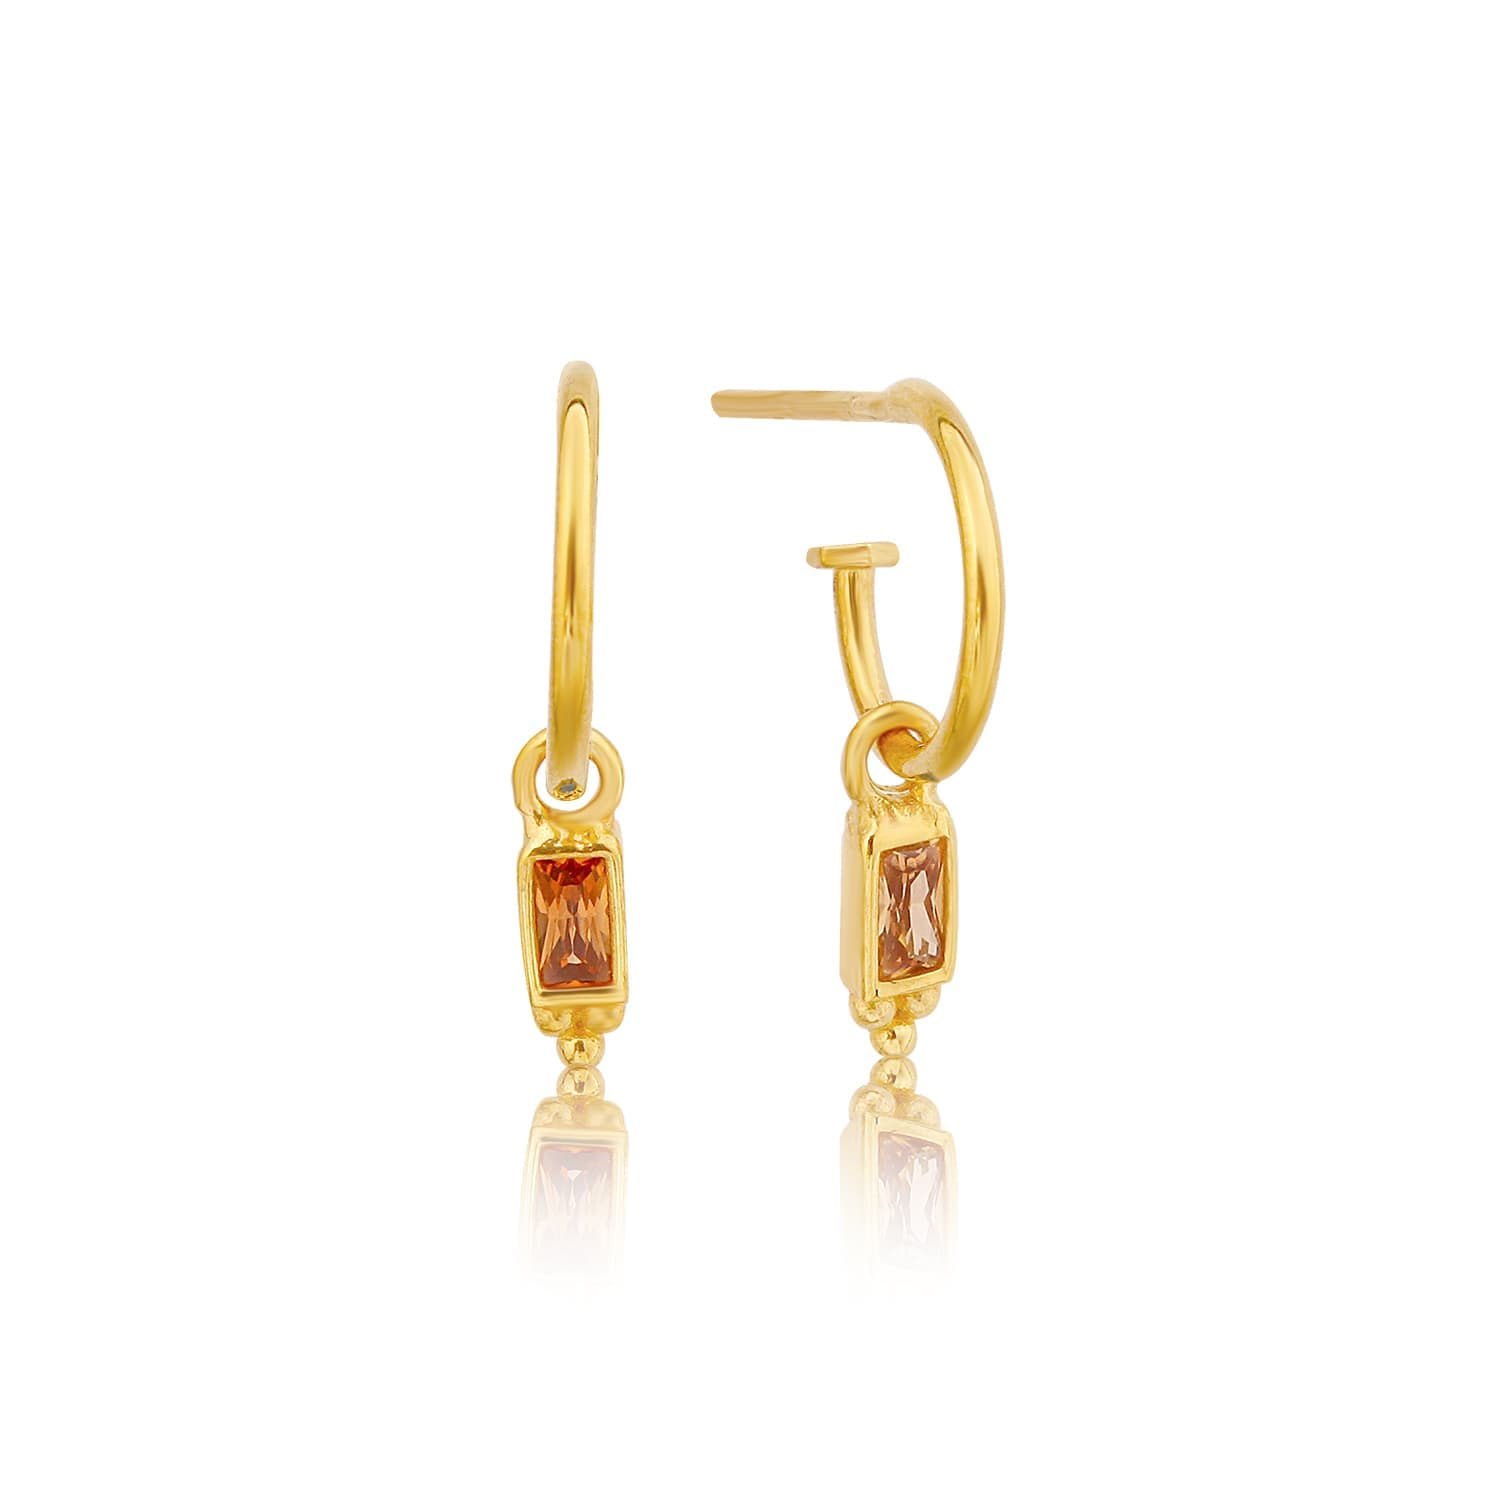 SUGAR SOLO PINK - GOLD-PLATED EARRINGS